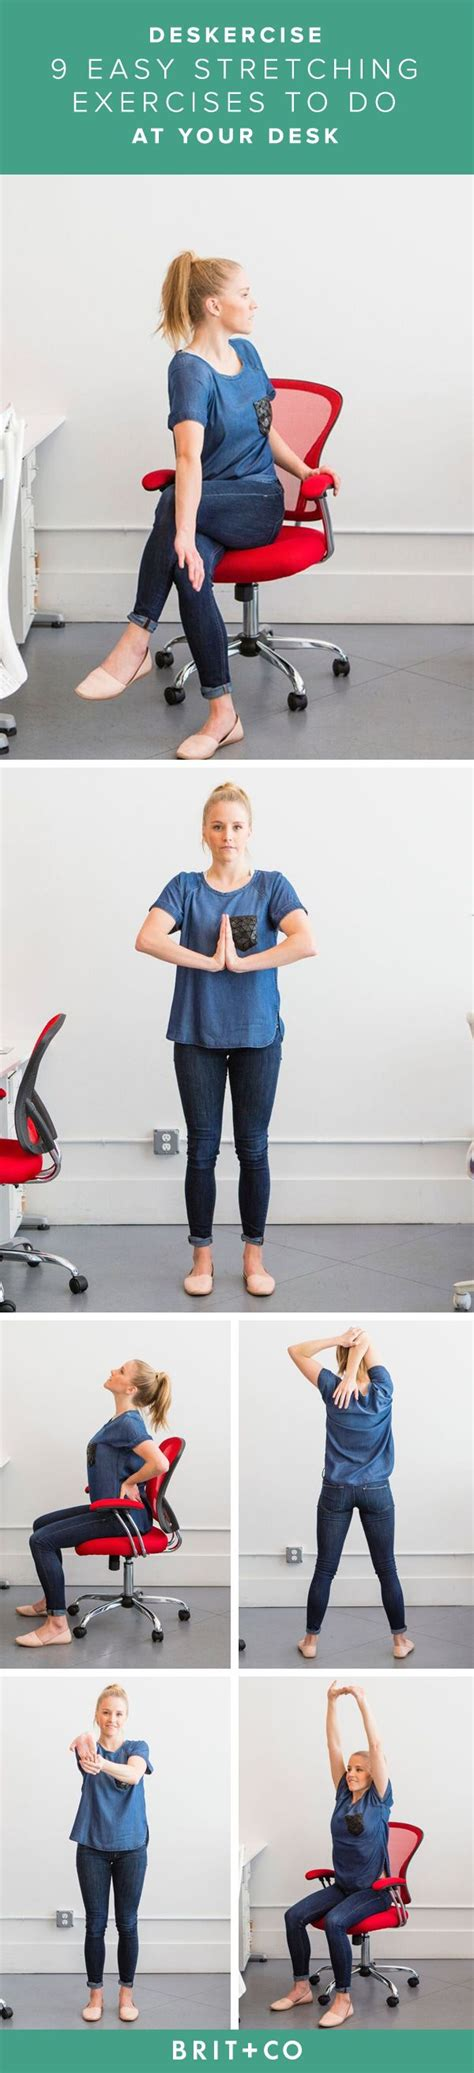 Exercises To Do At Desk by Deskercise 9 Easy Stretches You Can Do At Your Desk